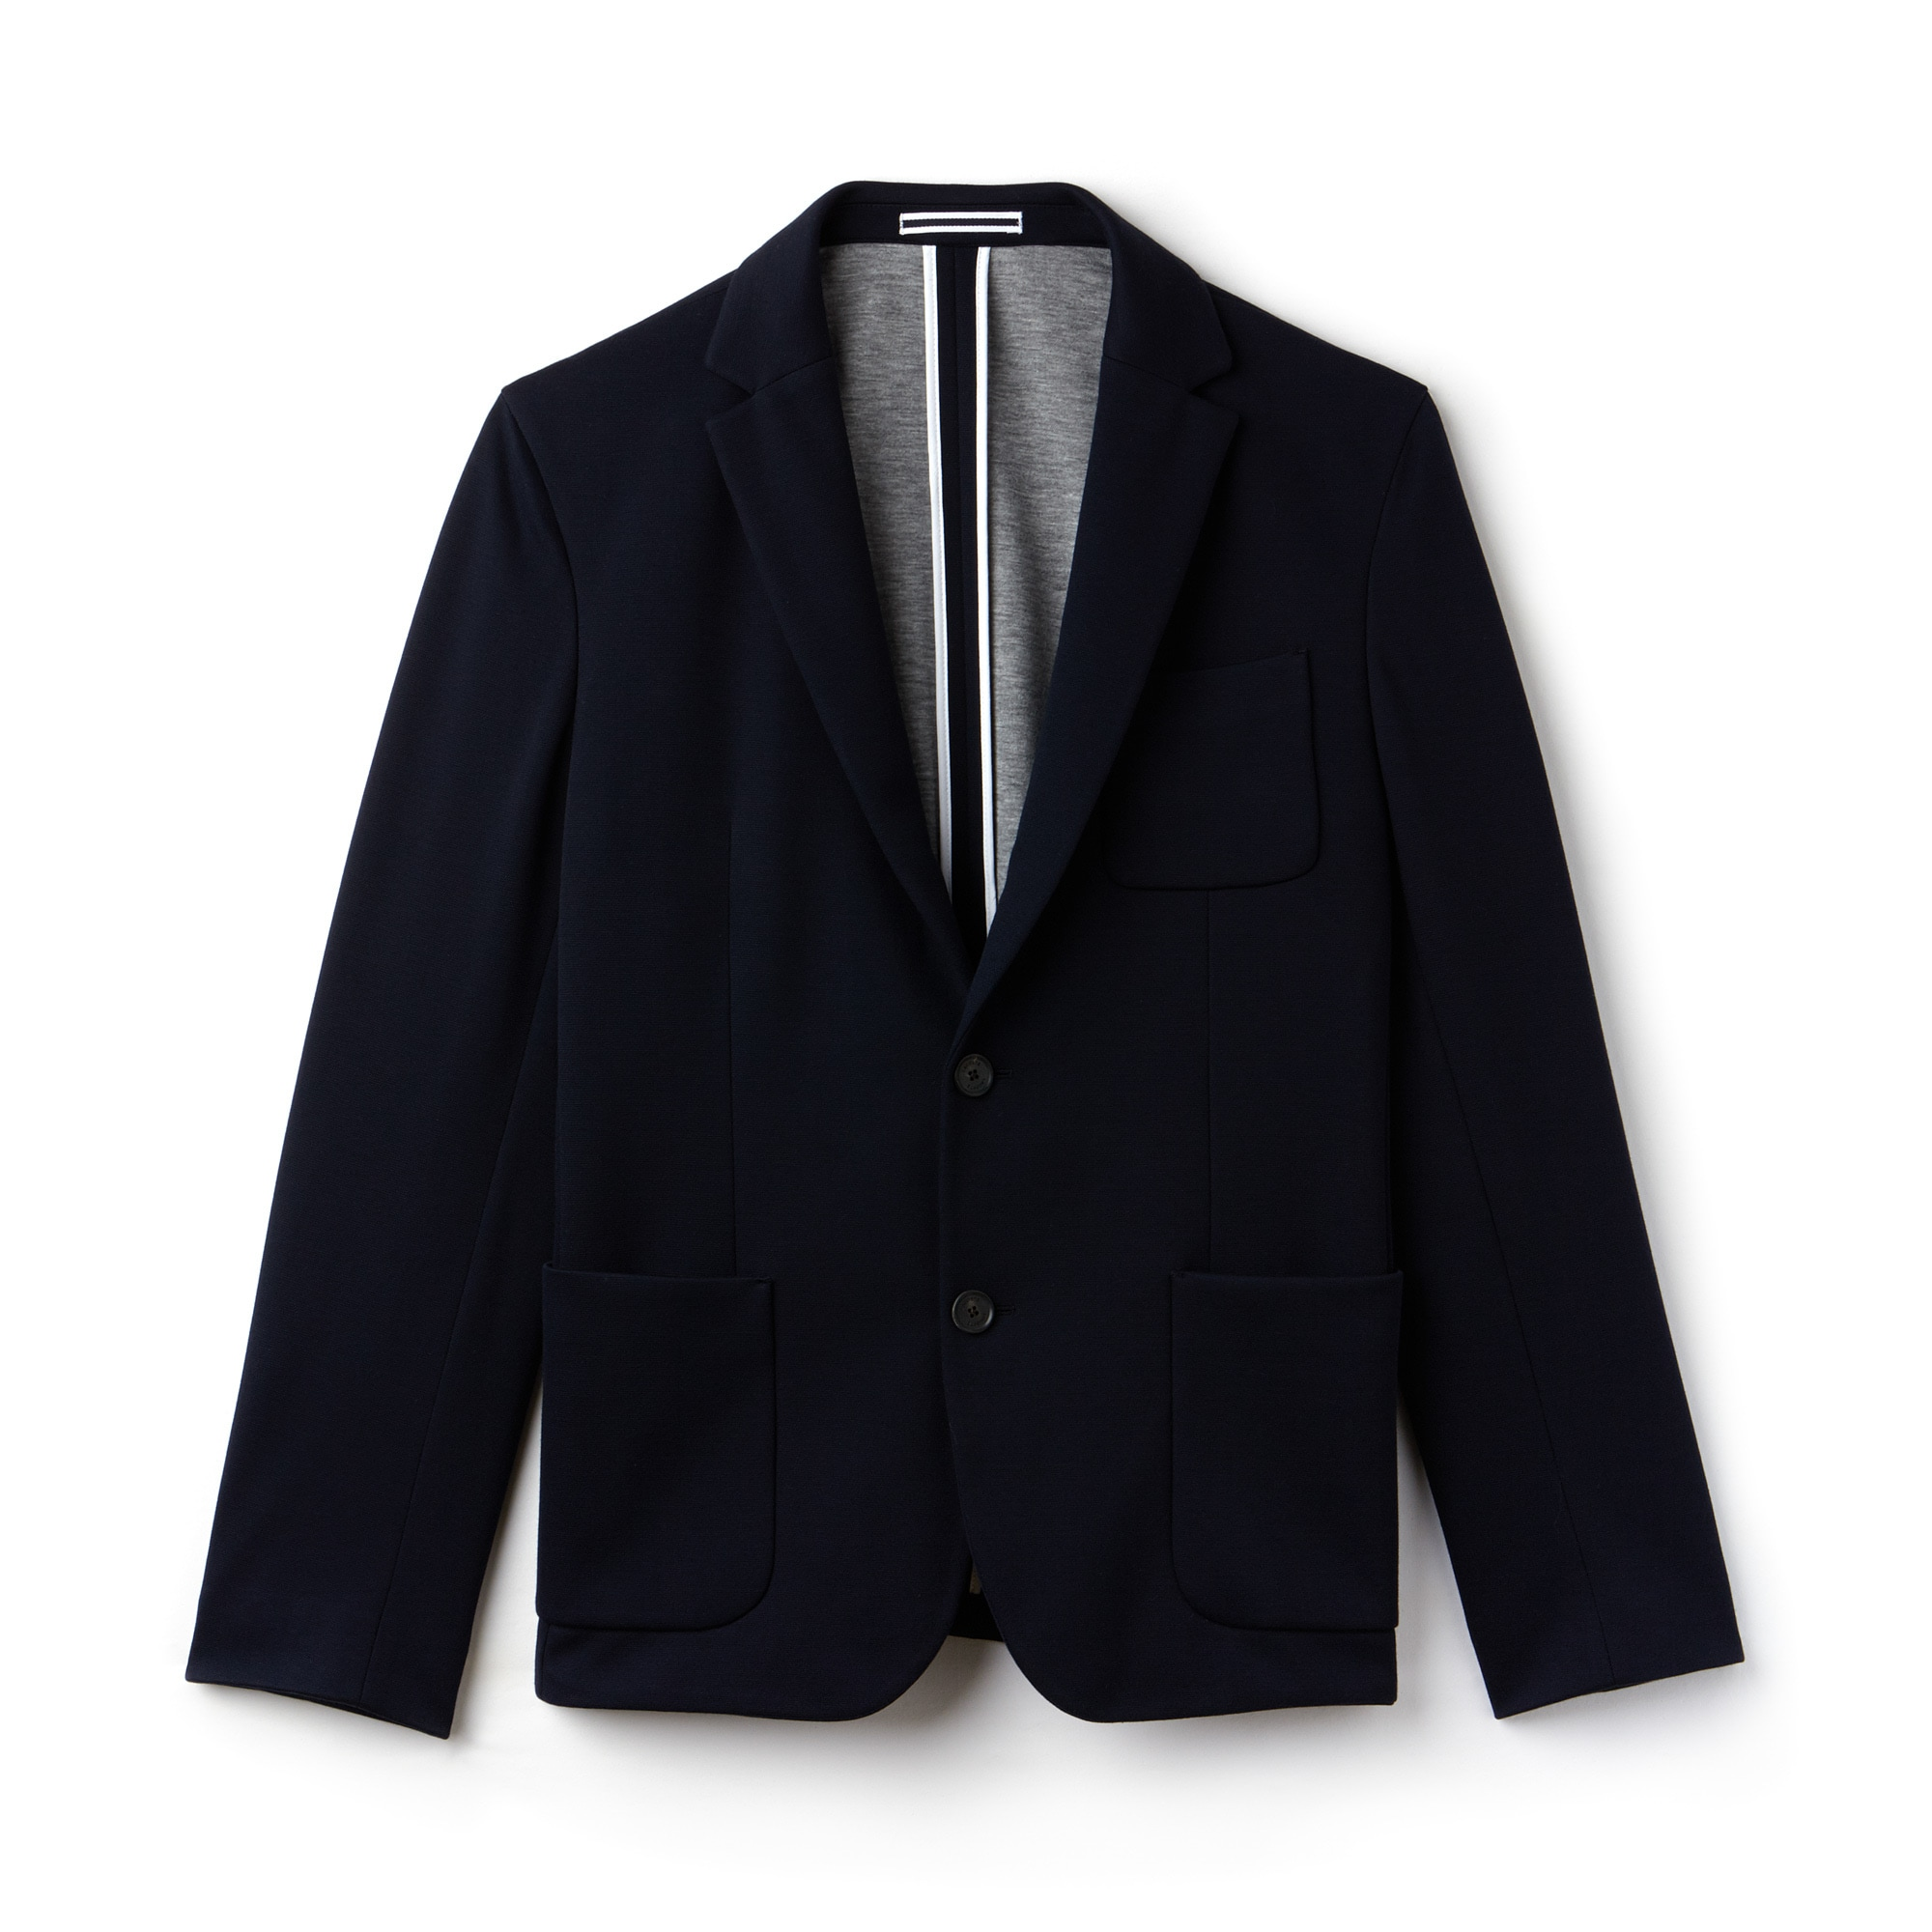 Men's Stretch Cotton Piqué Blazer by Lacoste